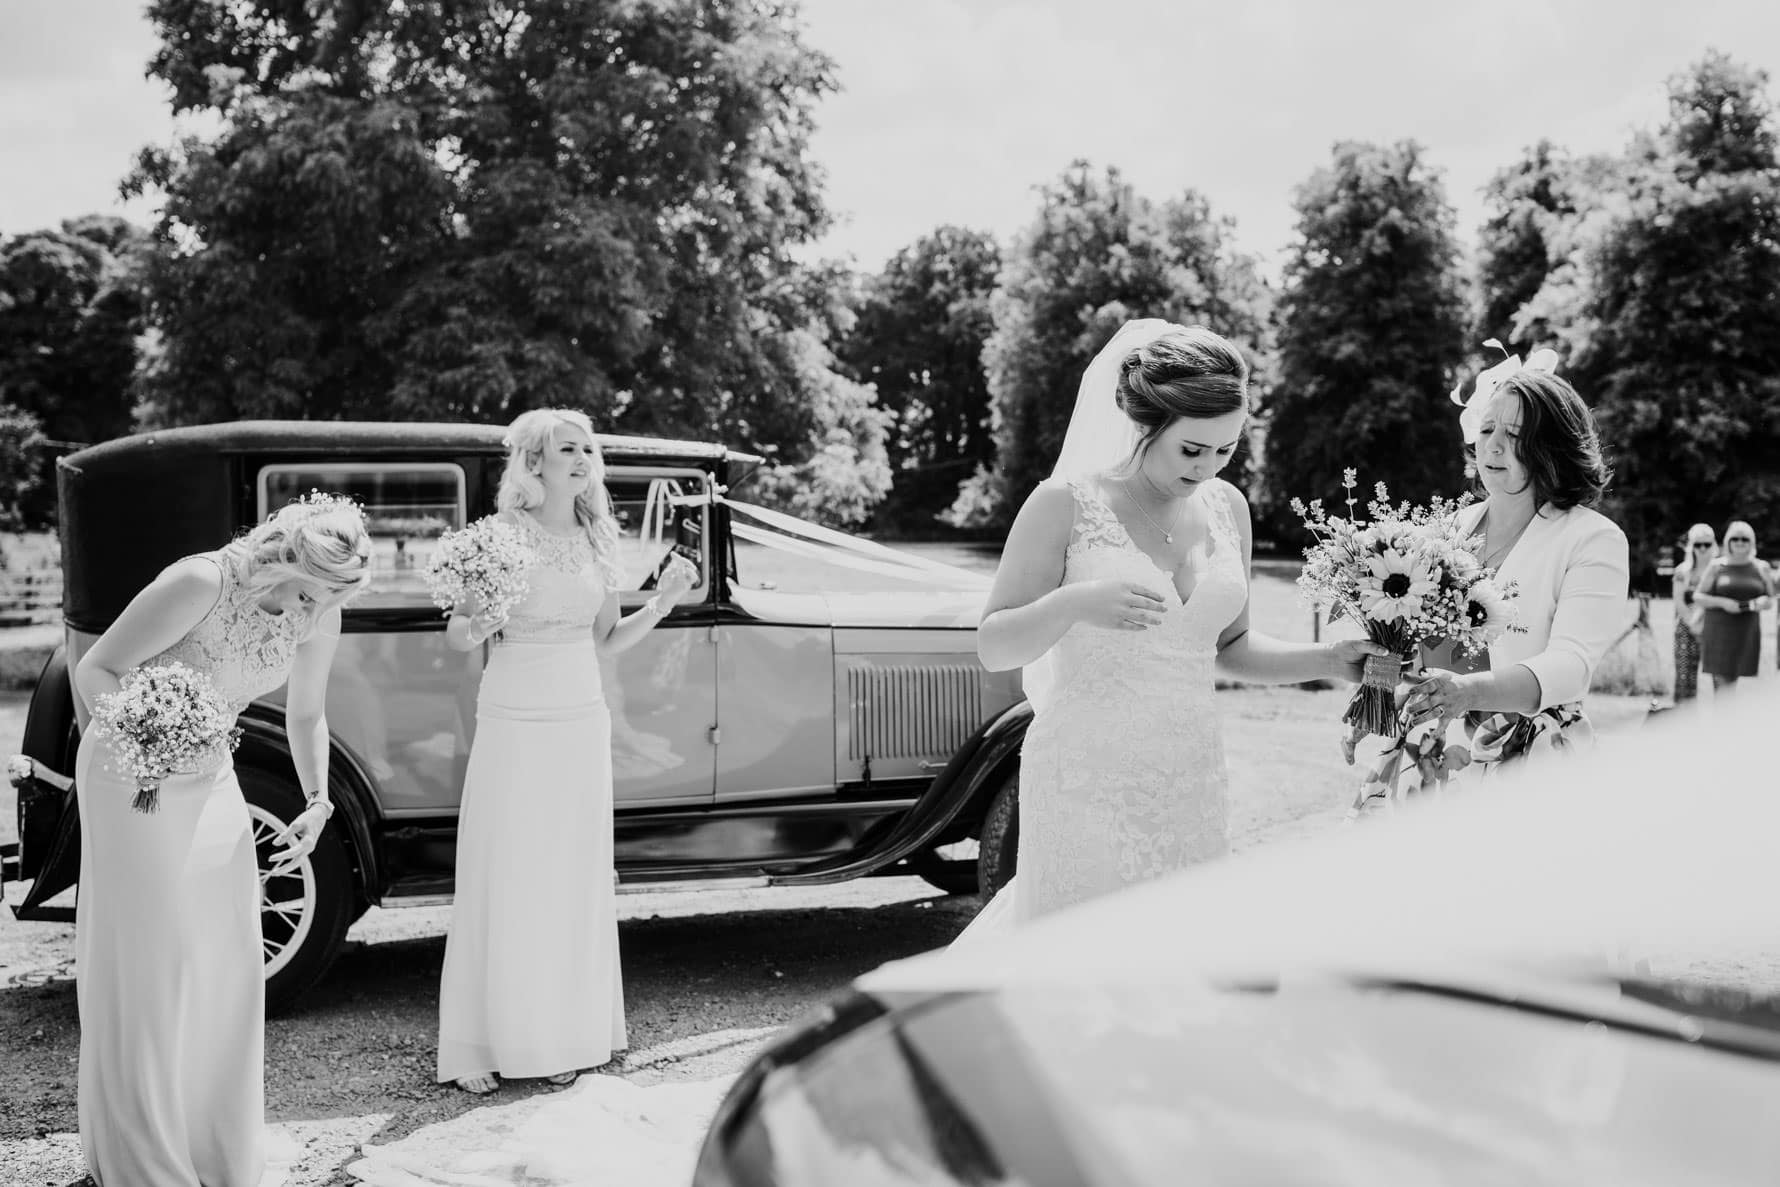 Bride and bridesmaids just before a wedding ceremony